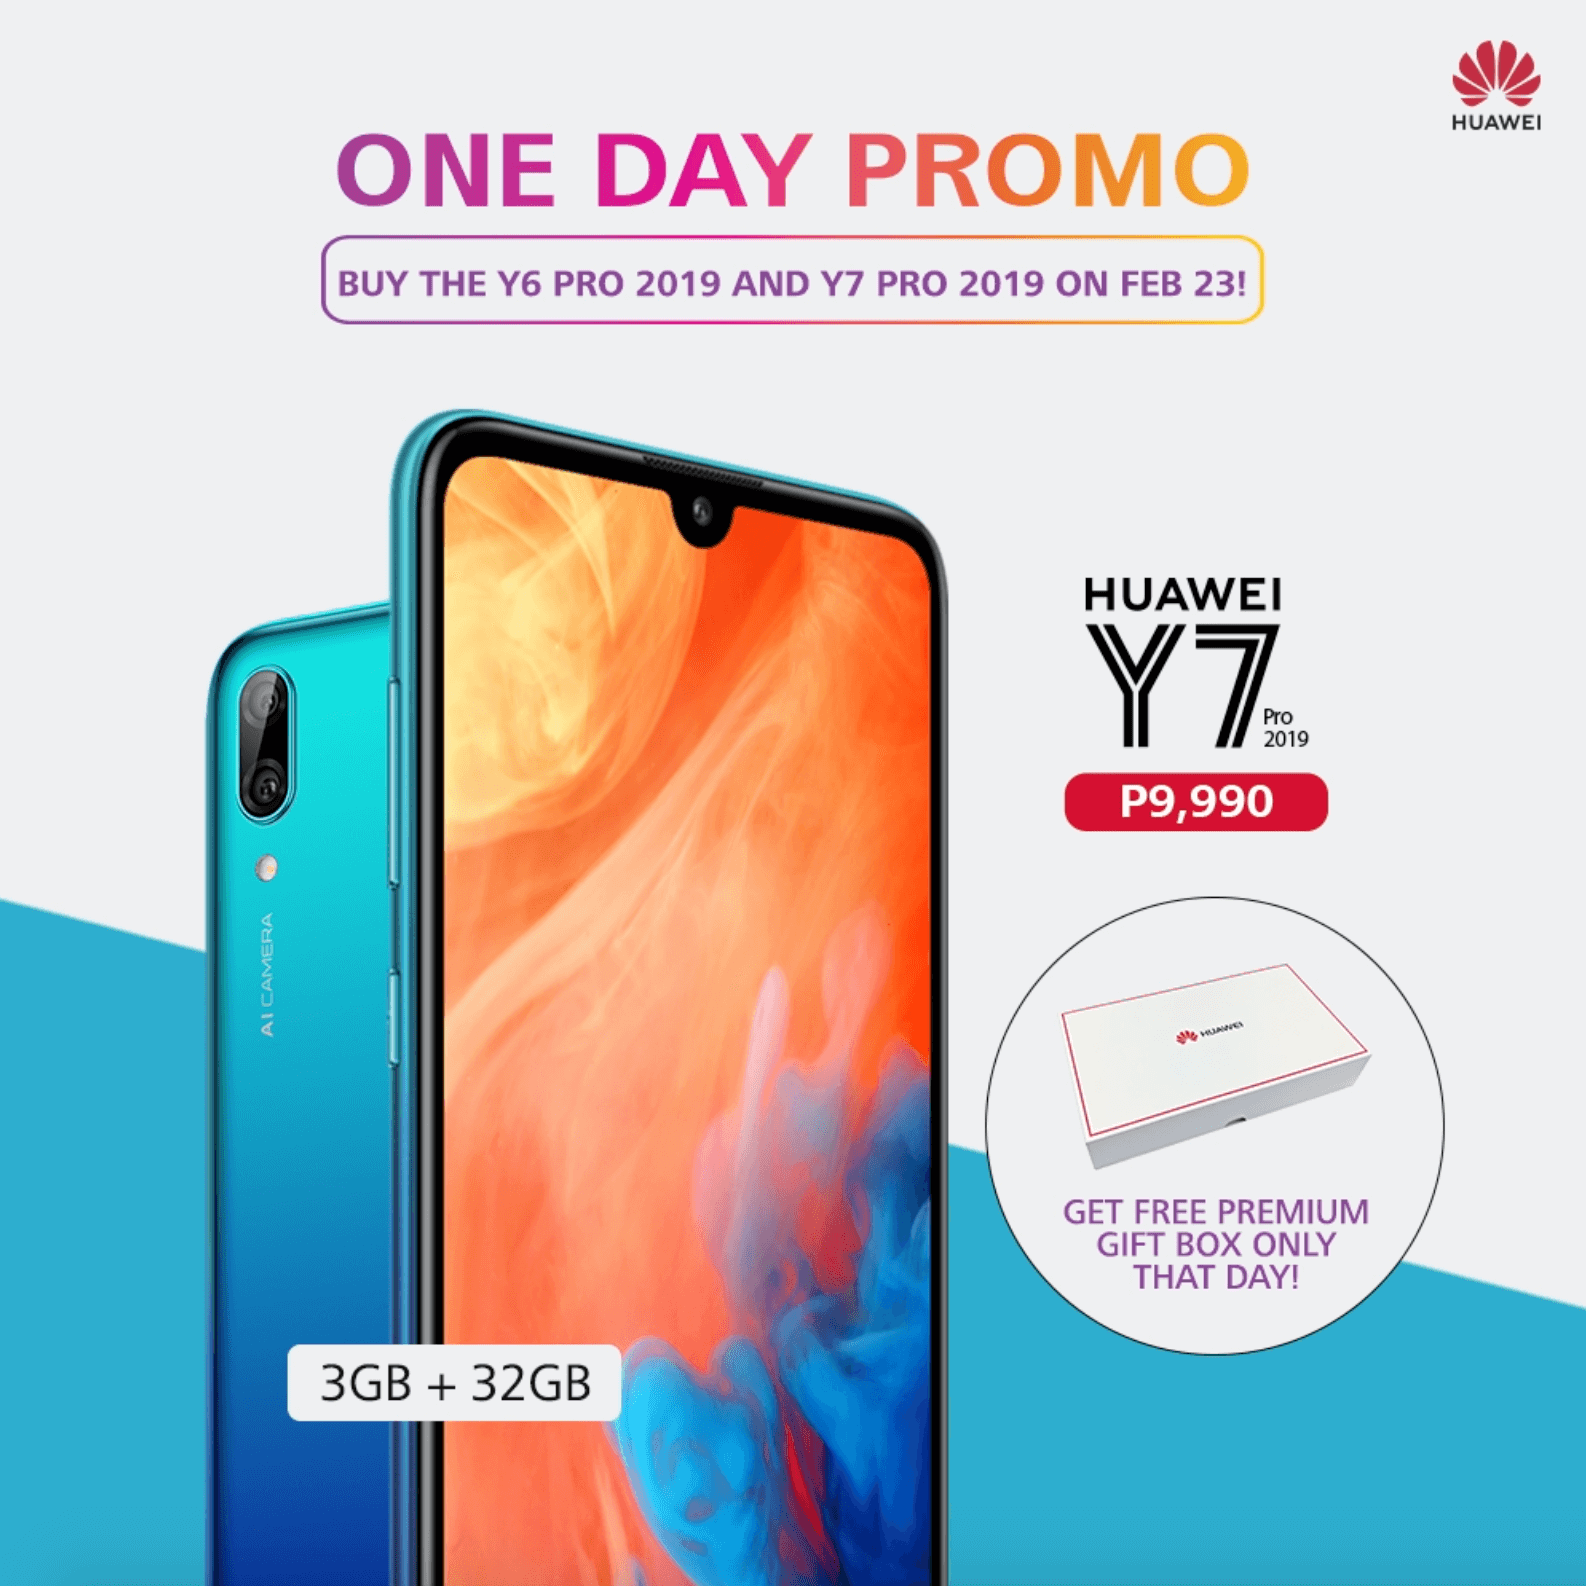 Huawei Y6 Pro 2019 and Y7 Pro 2019 Available in Stores